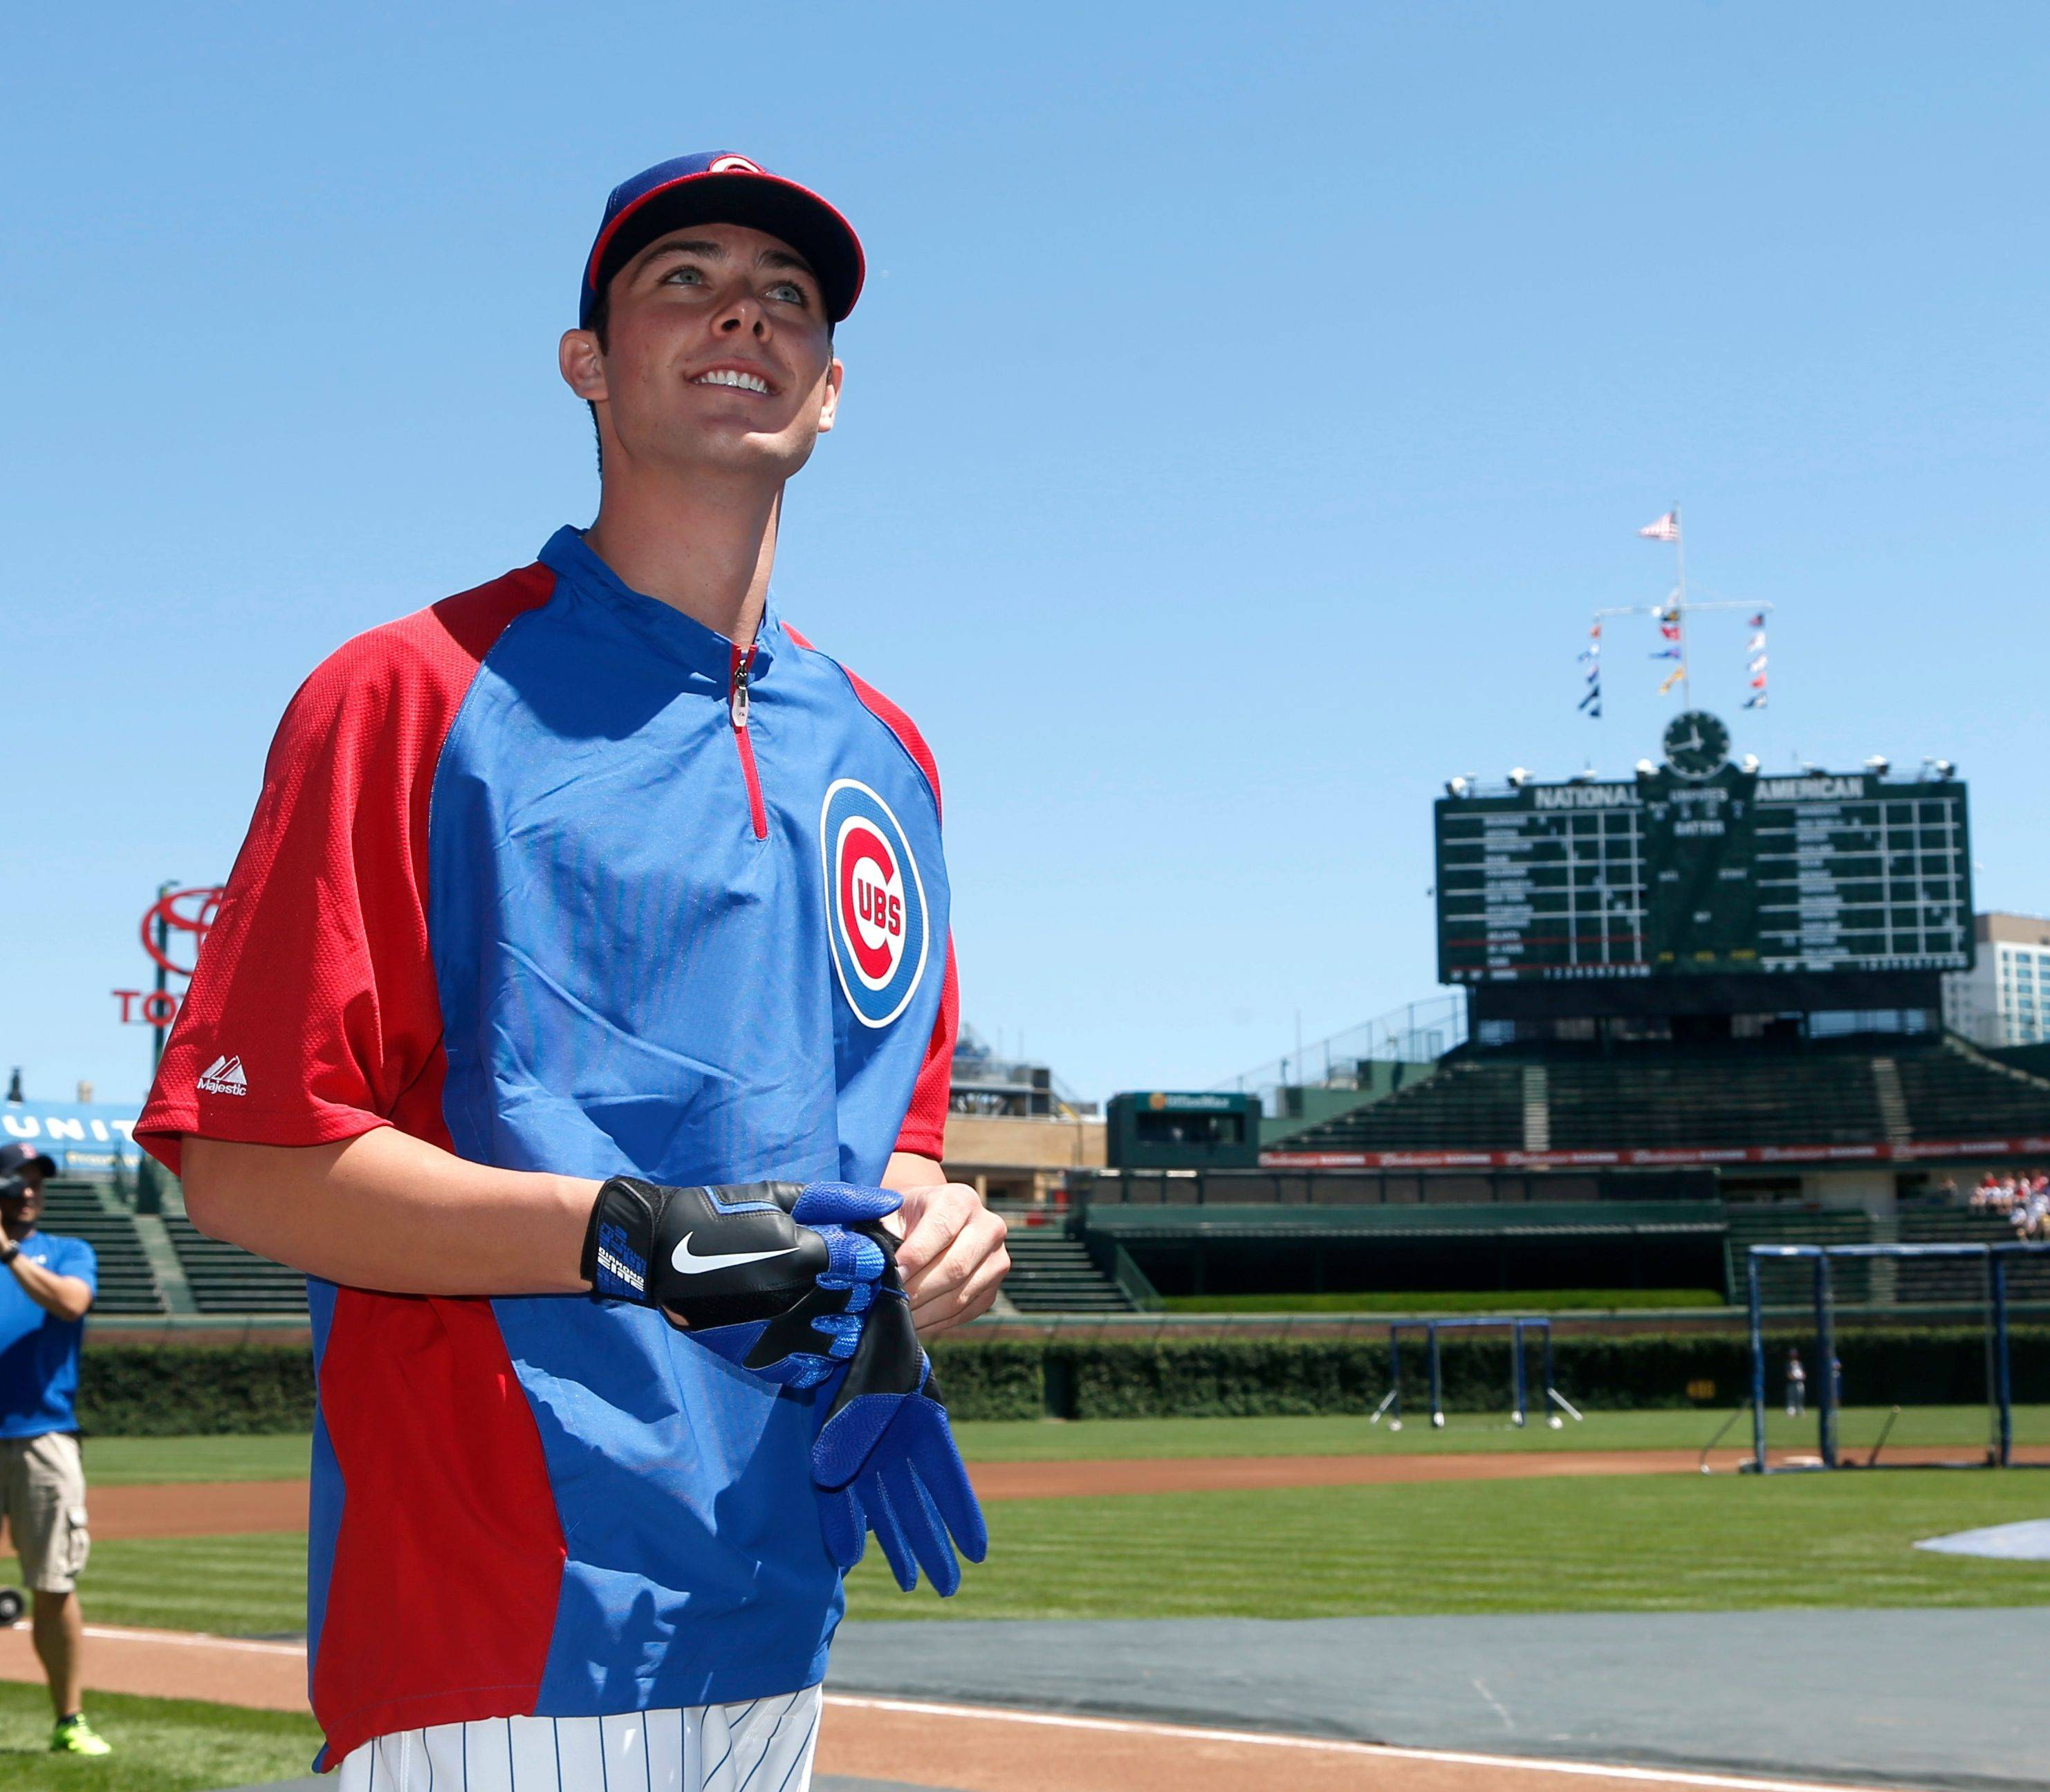 Cubs' first-round draft pick Kris Bryant looks around Wrigley Field before a private batting practice session with manager Dale Sveum before the Cubs played the Cardinals on Friday. At his introductory news conference, Bryant said he's going to do whatever the Cubs ask of him. See story, Page 3.